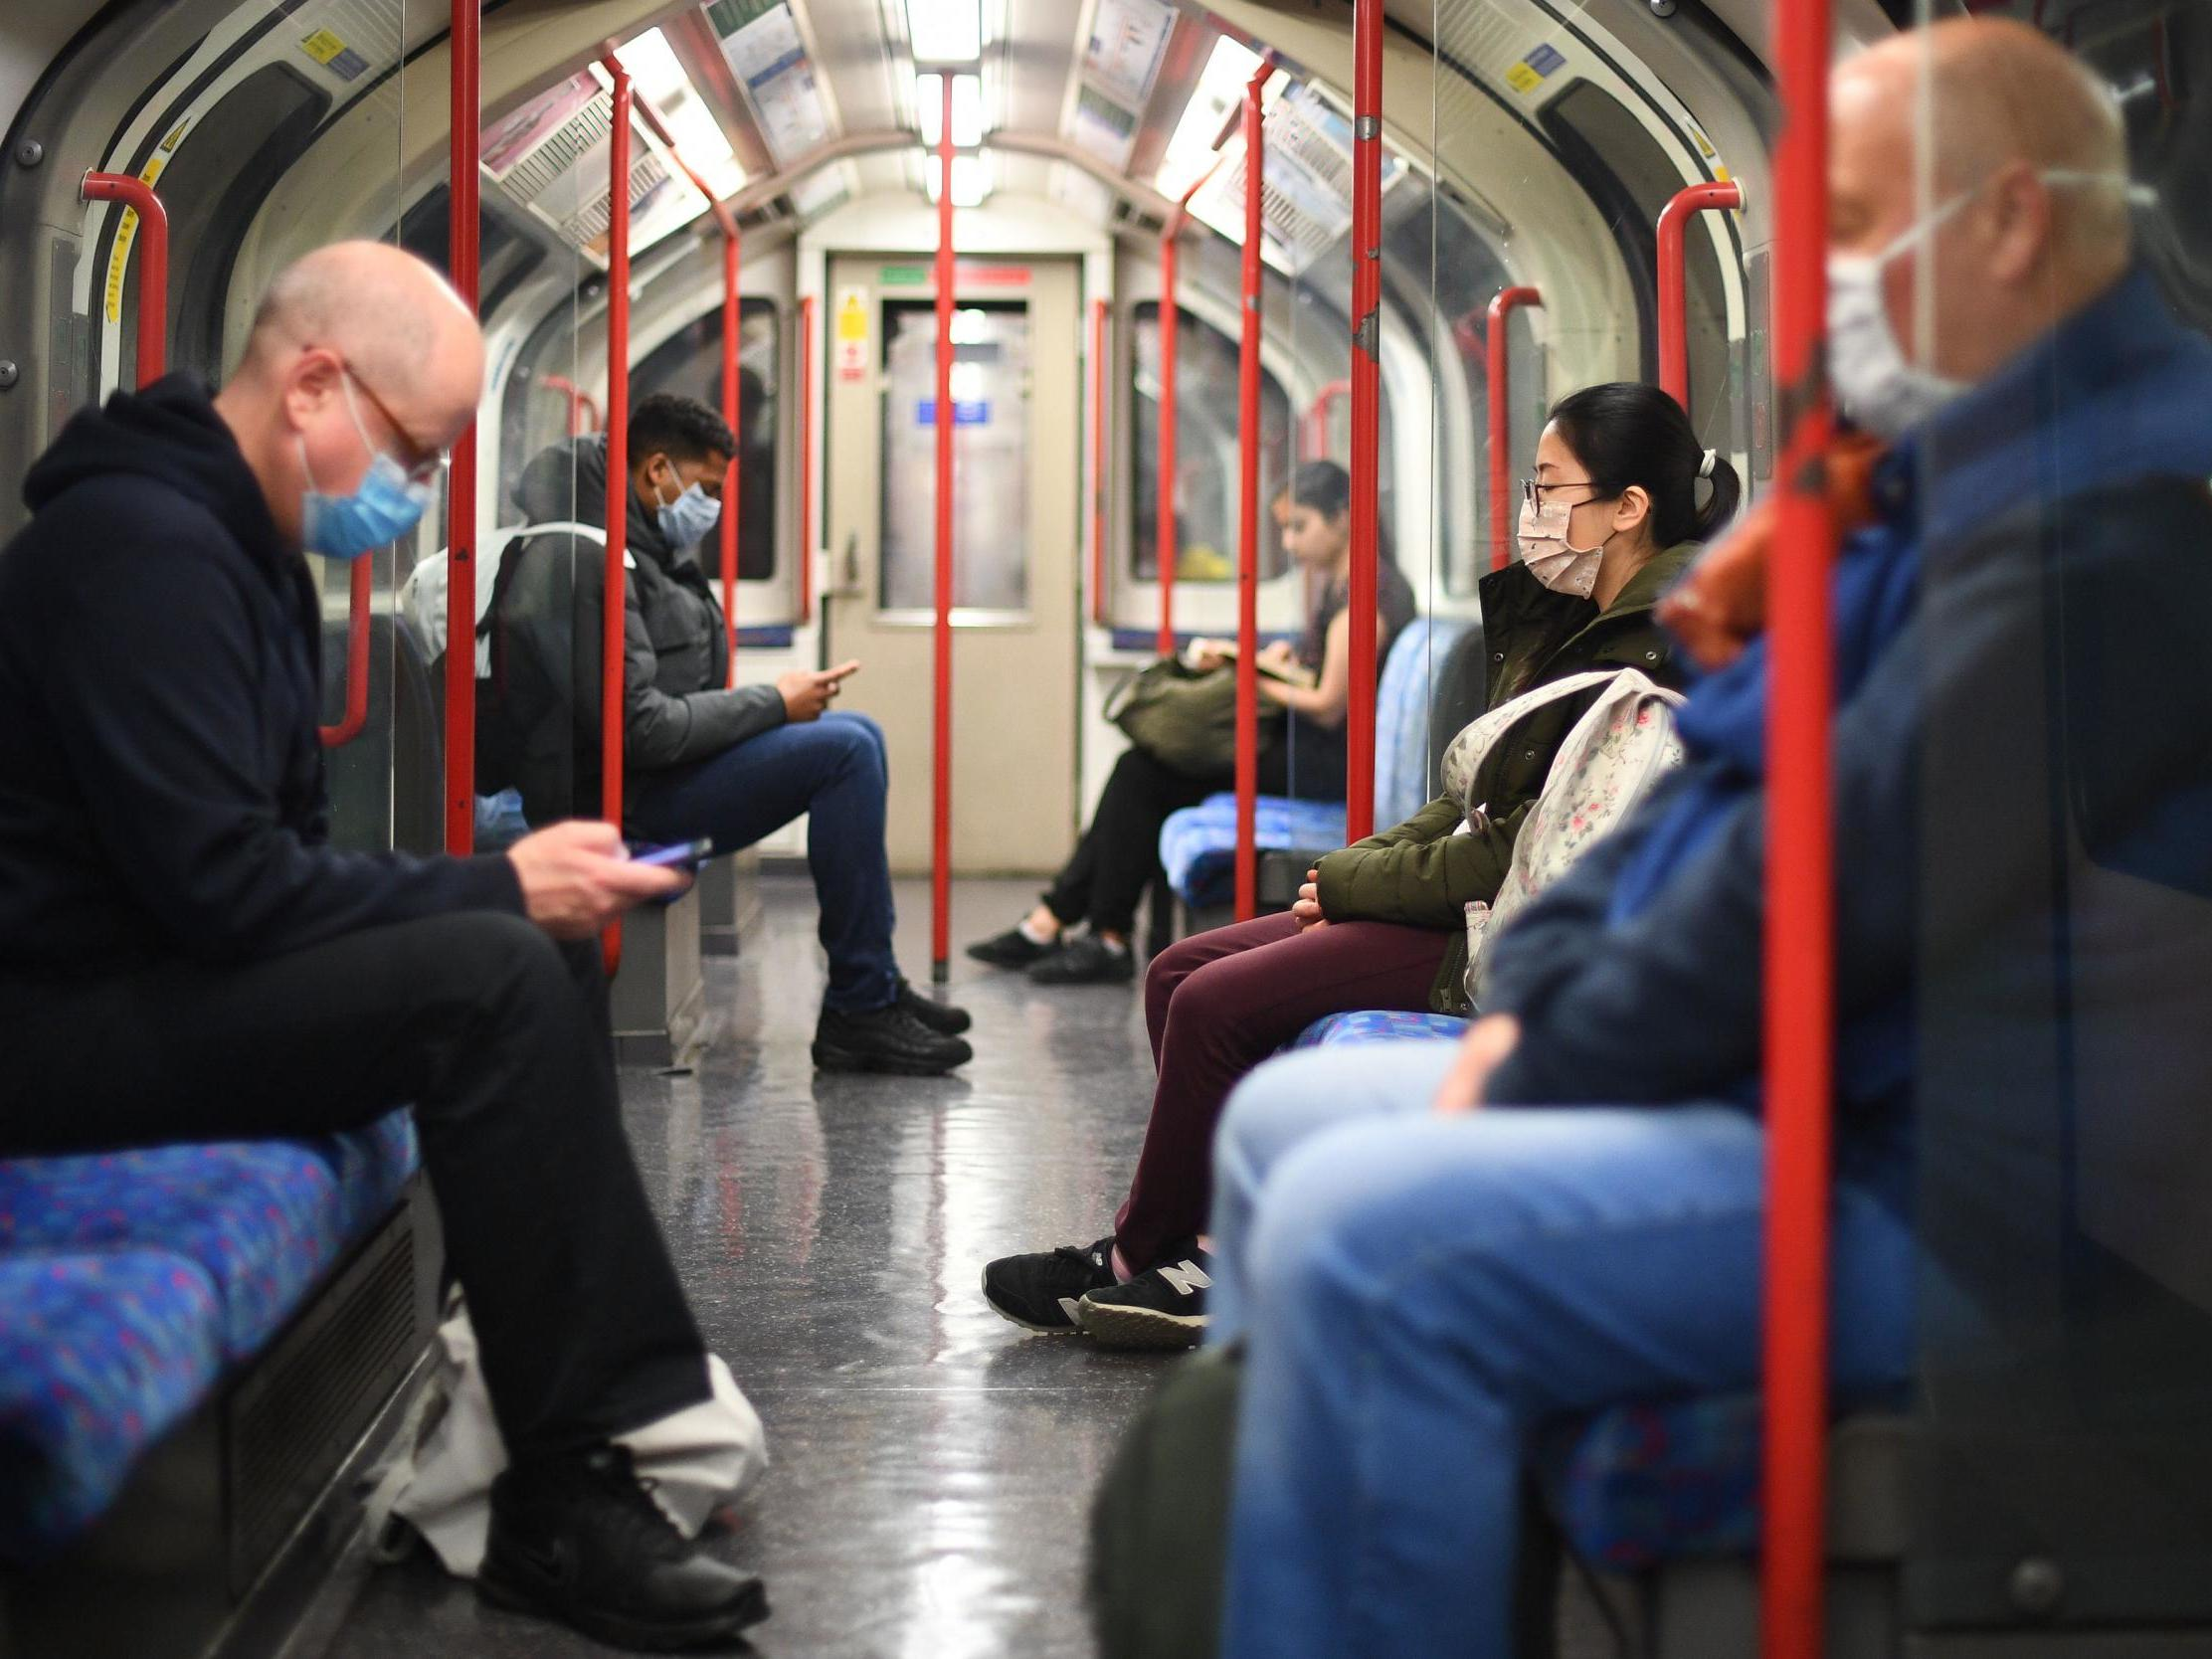 TfL launches new app to help Londoners use public transport safely